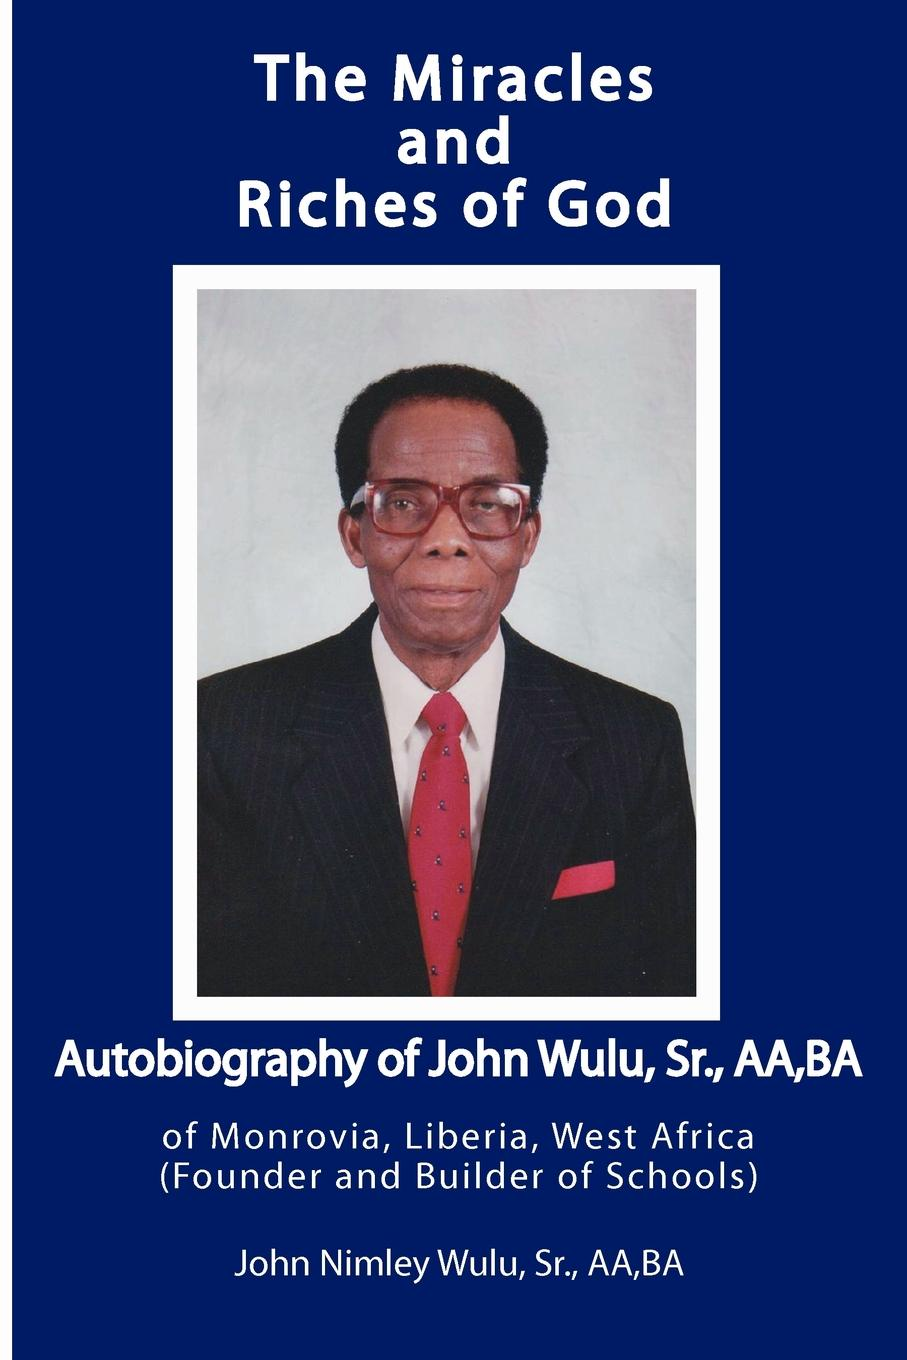 Sr. John Nimley Wulu The Miracles and Riches of God. Autobiography of John Nimley Wulu, Sr. of Monrovia, Liberia, West Africa (Founder and Builder of Schools) masters of meditation and miracles